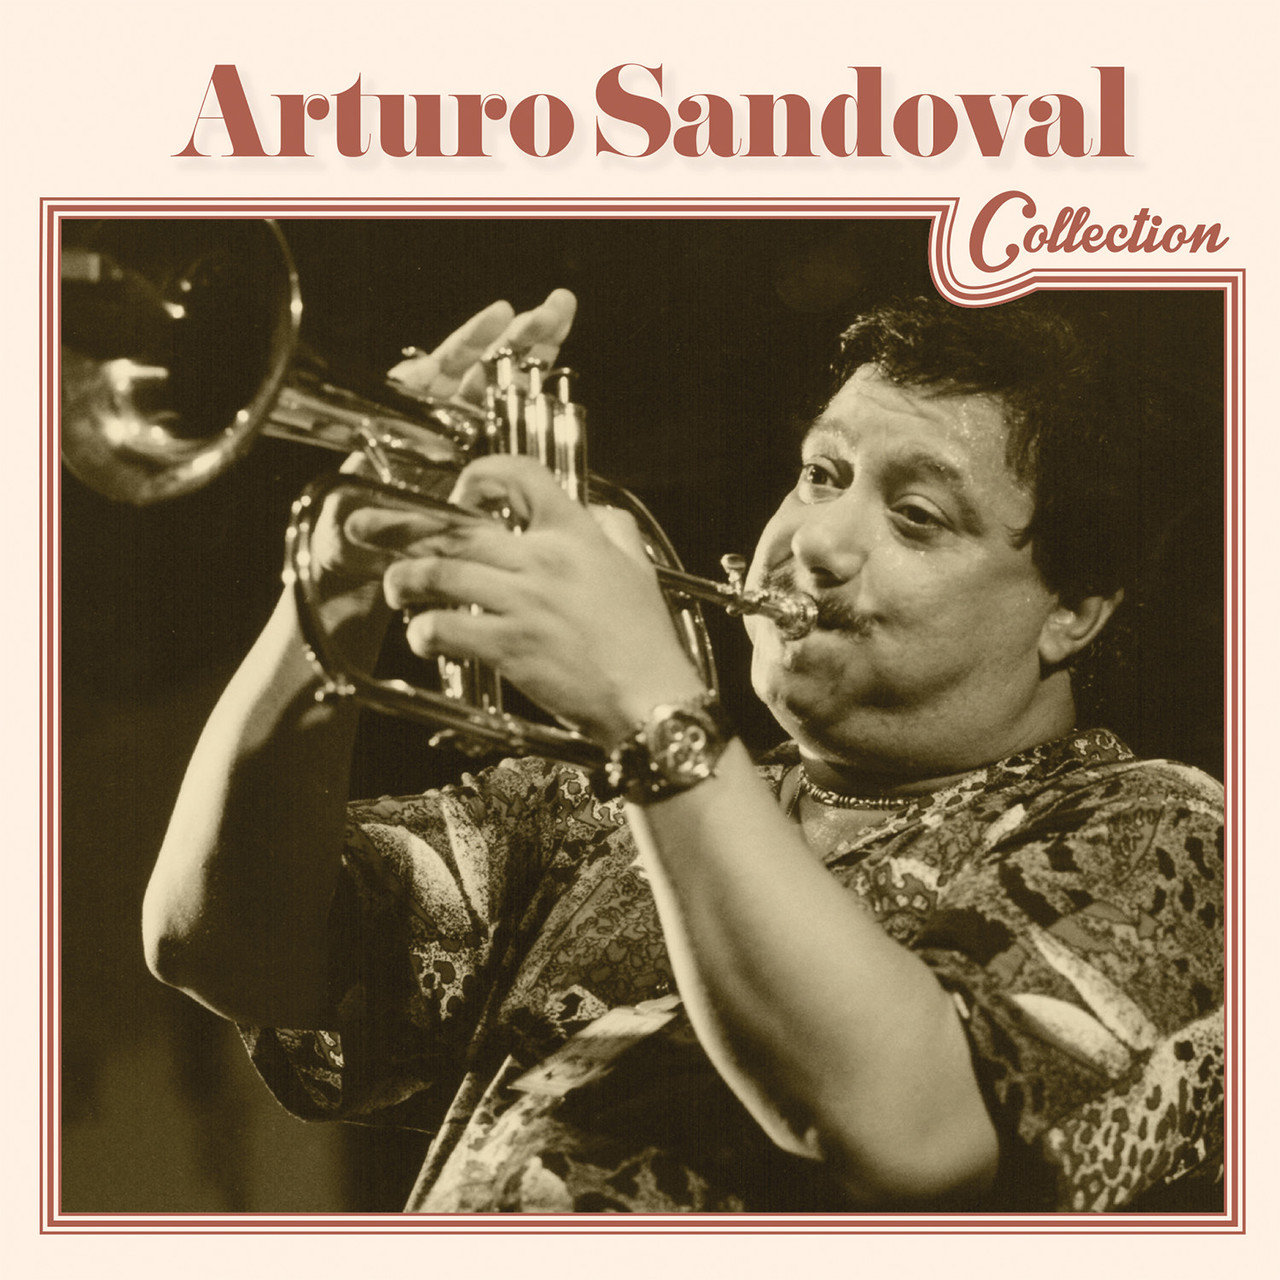 Arturo Sandoval Collection